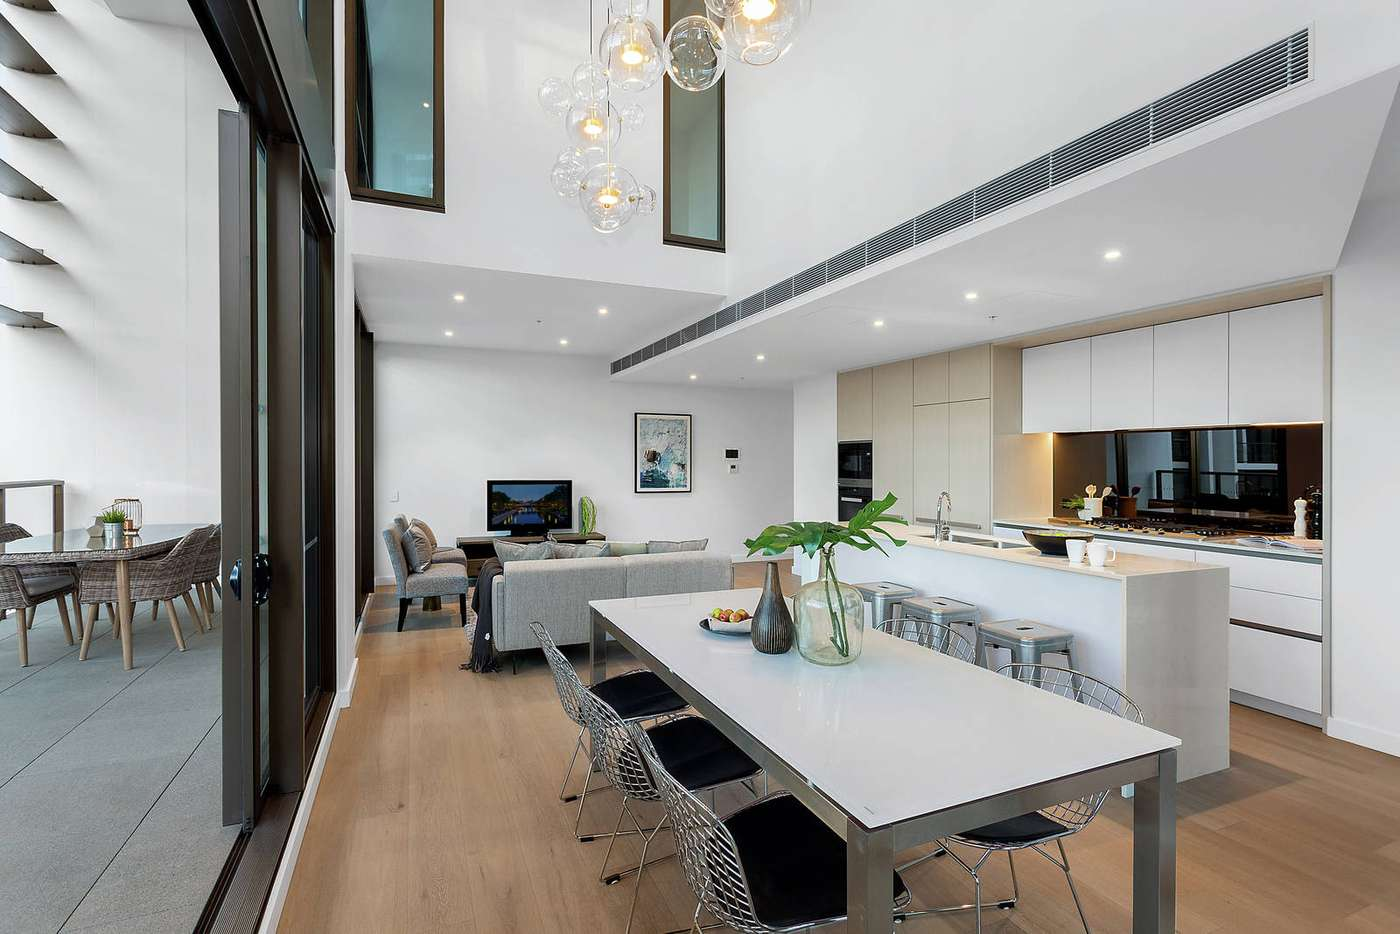 Main view of Homely apartment listing, 801/70 Tumbalong Boulevard, Sydney, NSW 2000